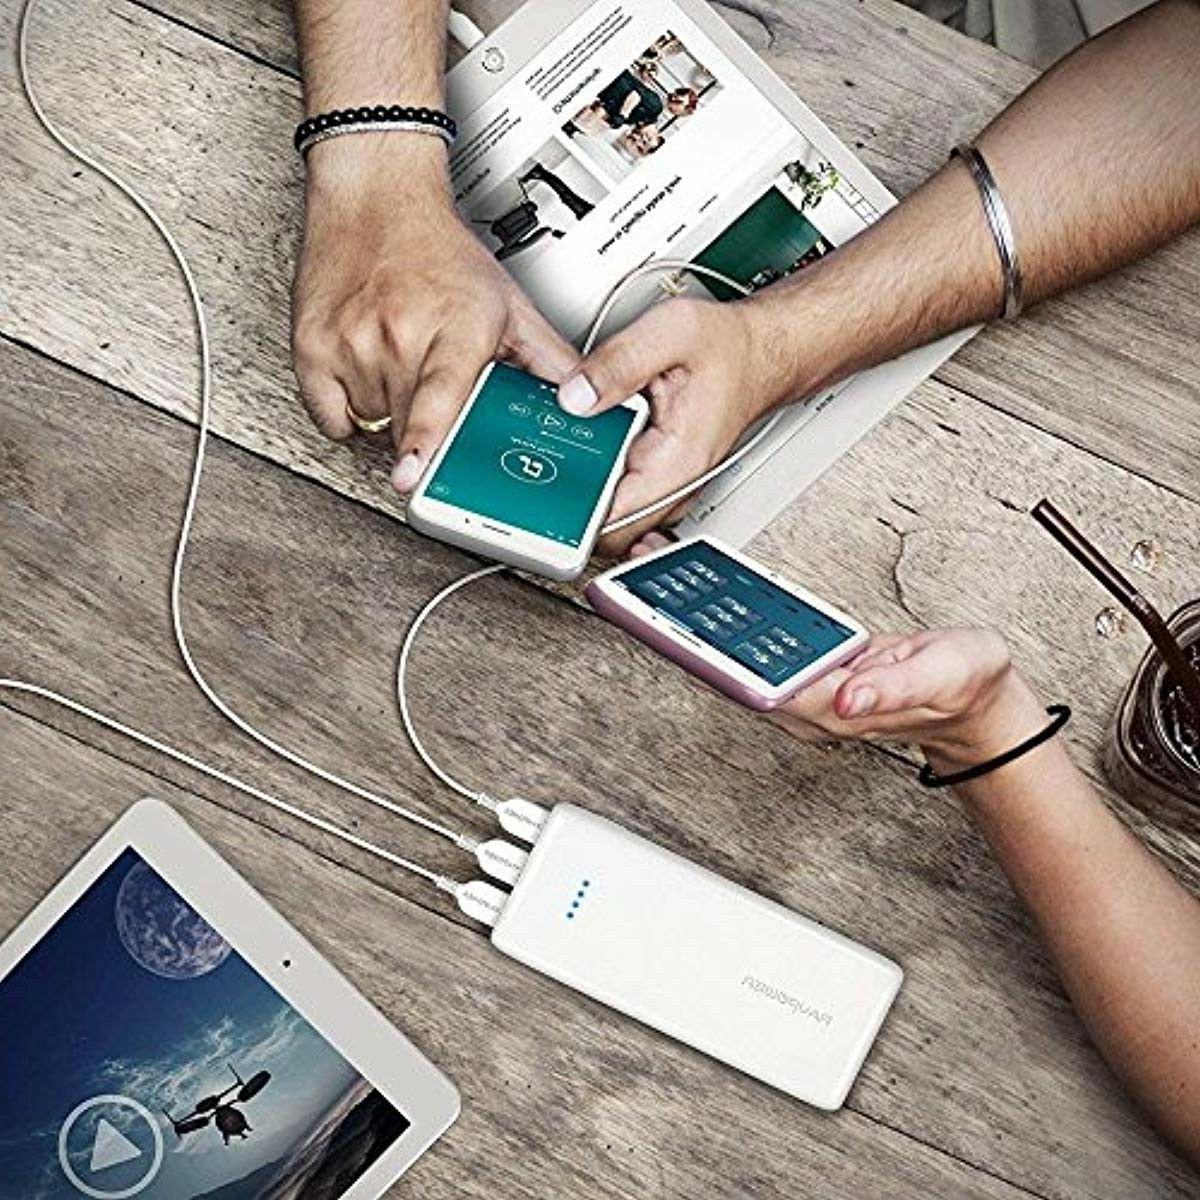 RAVPower Power Bank 3-Port Battery Portable